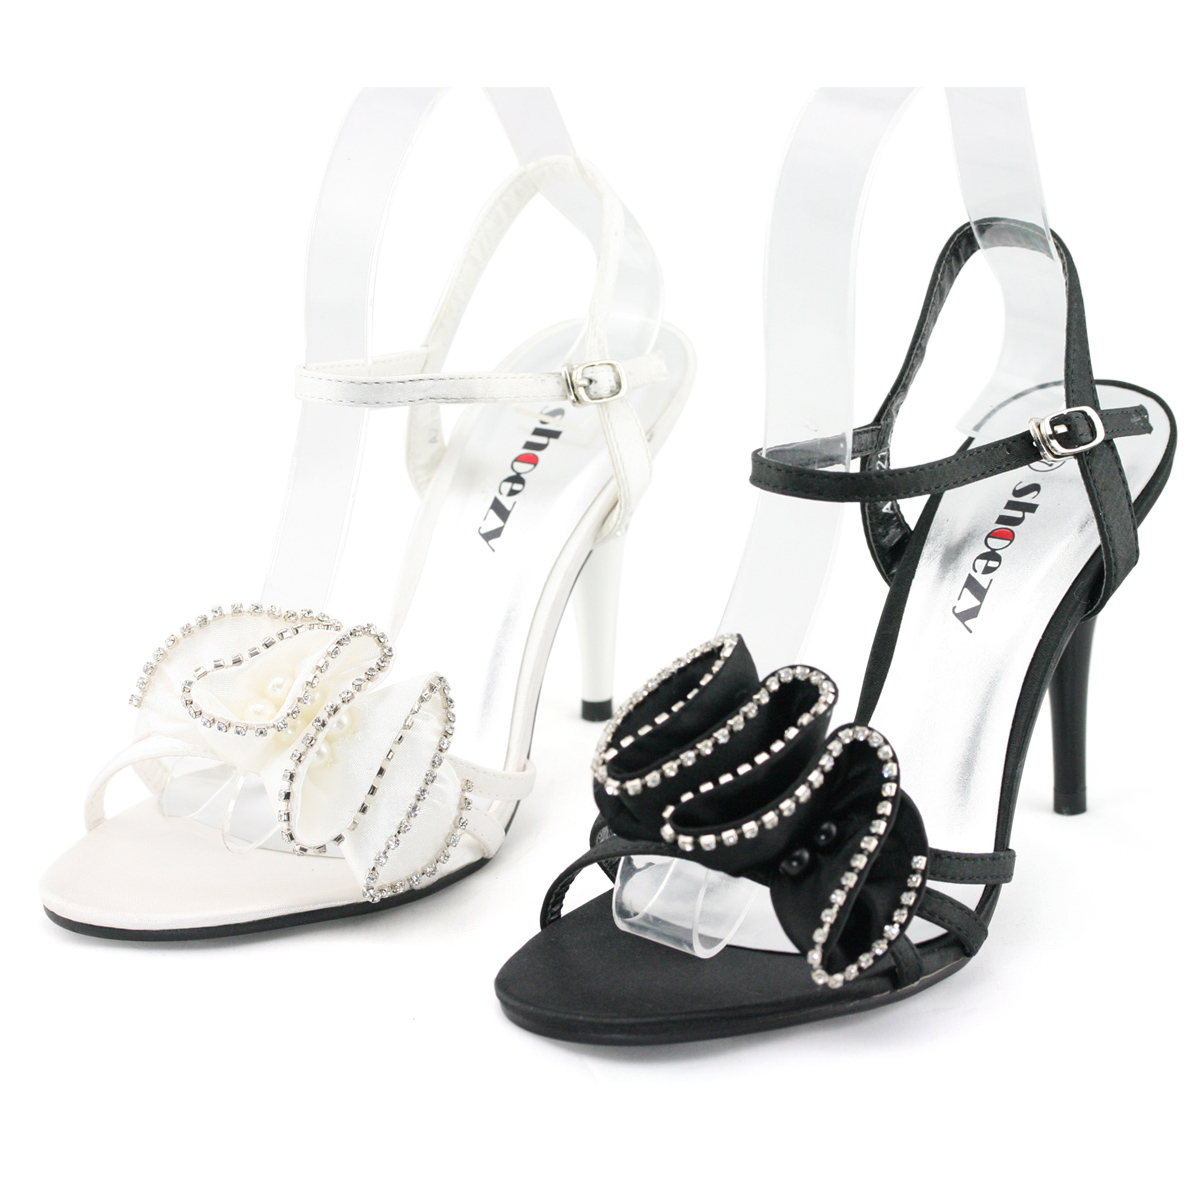 SHOEZY-womens-flower-diamante-formal-wedding-prom-dresses-peep-toes-heels-shoes